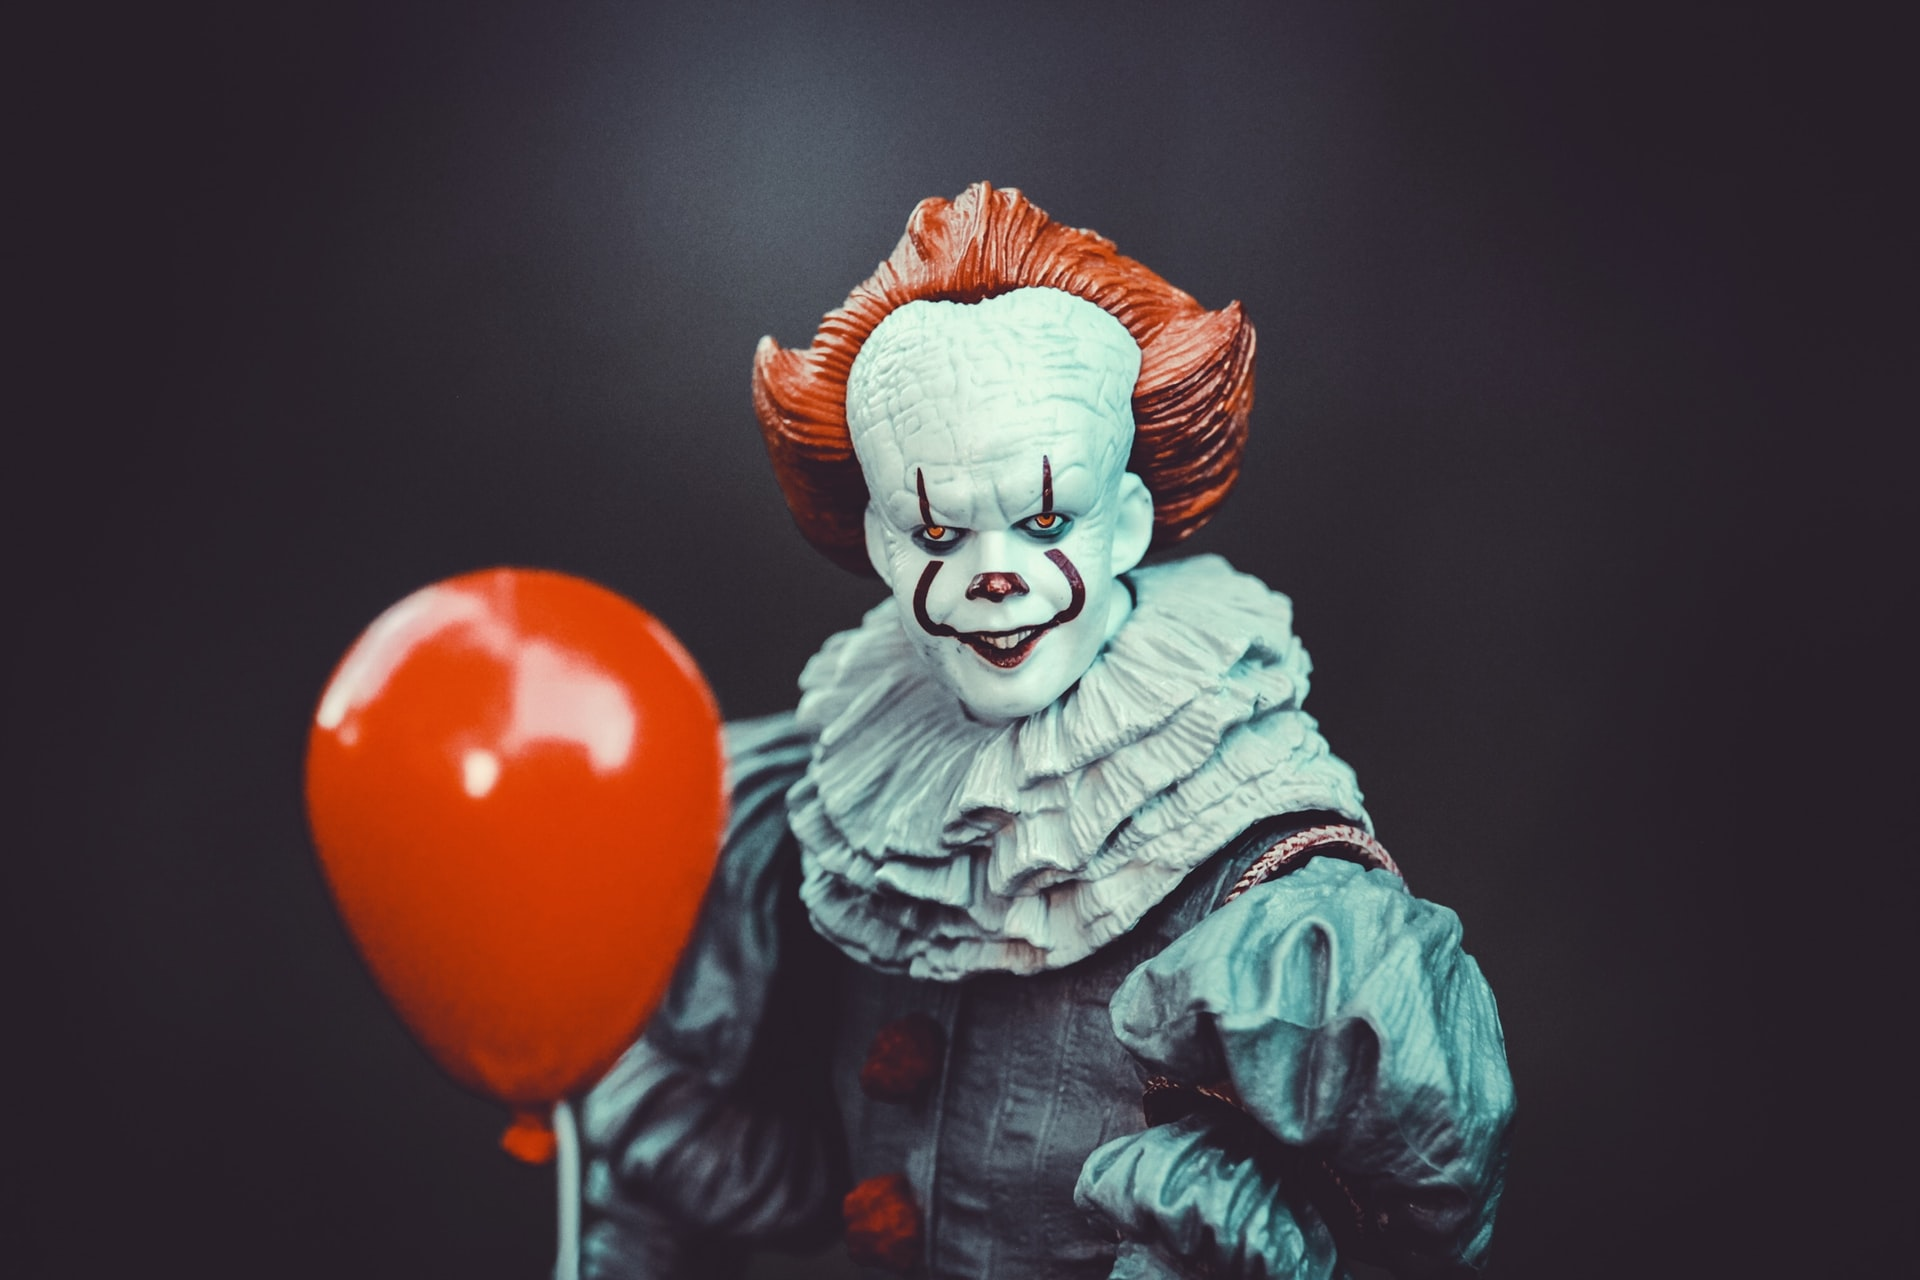 Pennywise holding a red balloon